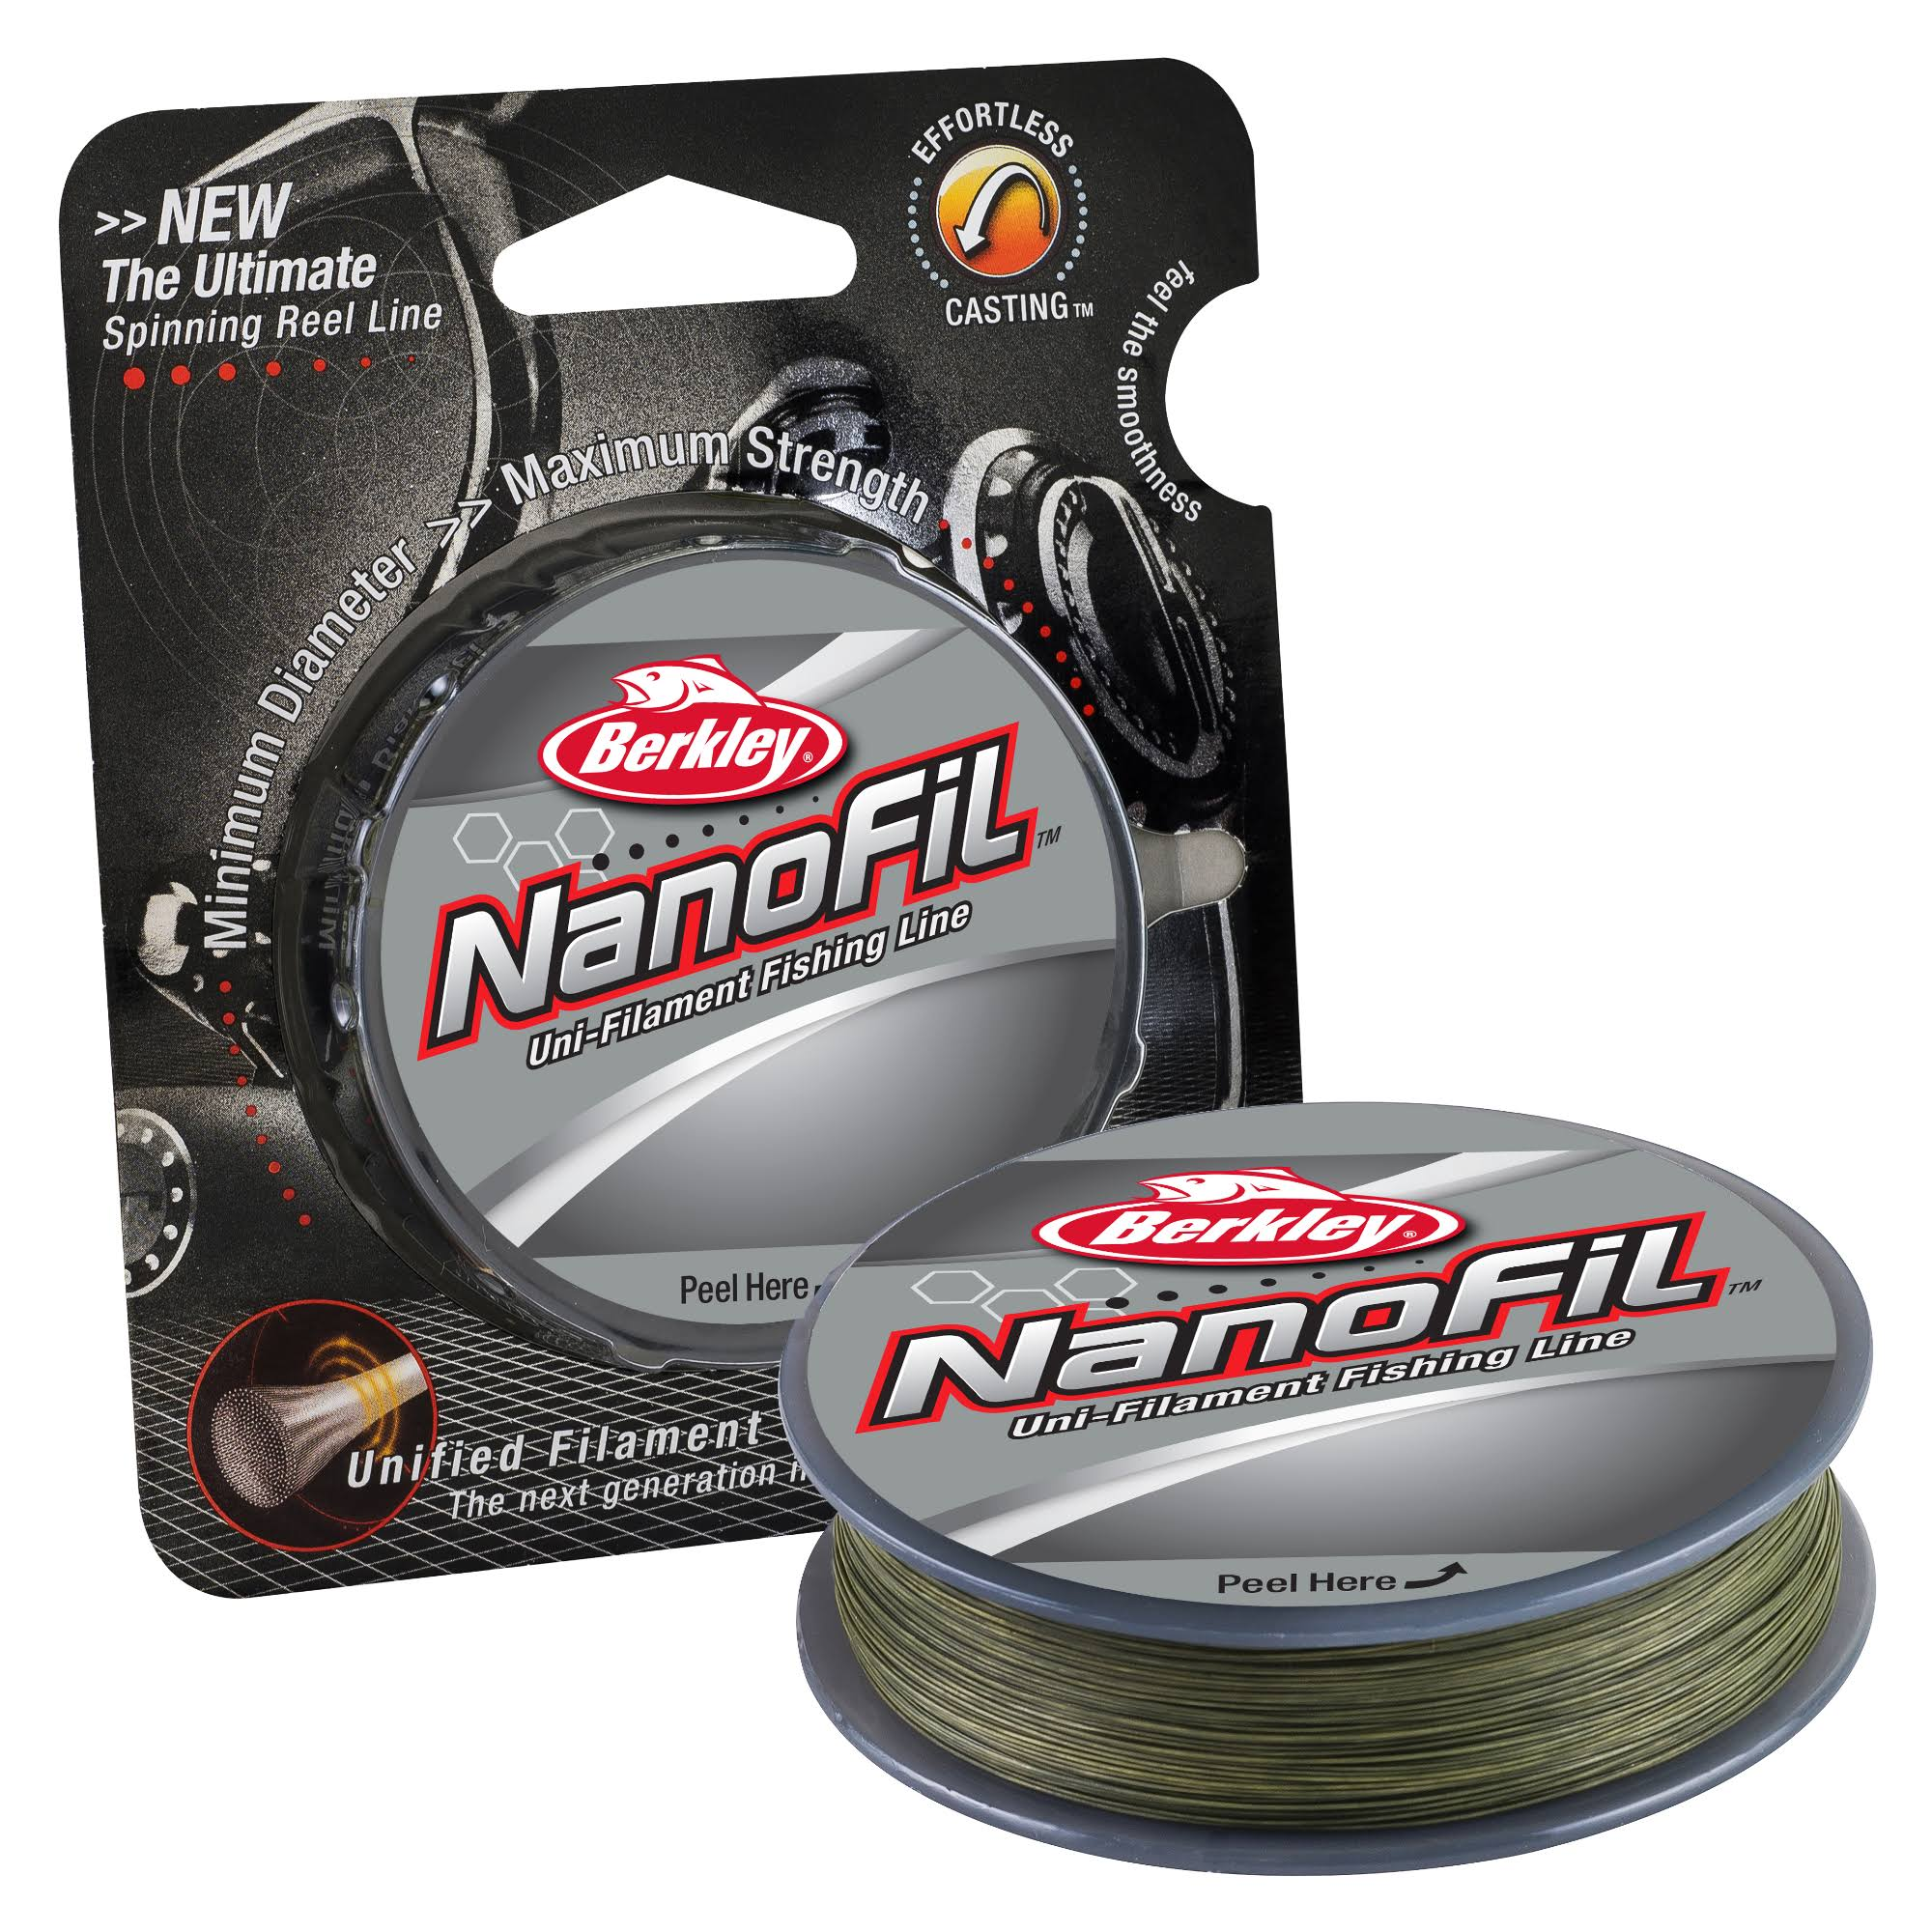 Berkley Nanofil Uni-Filament Fishing Line - Green